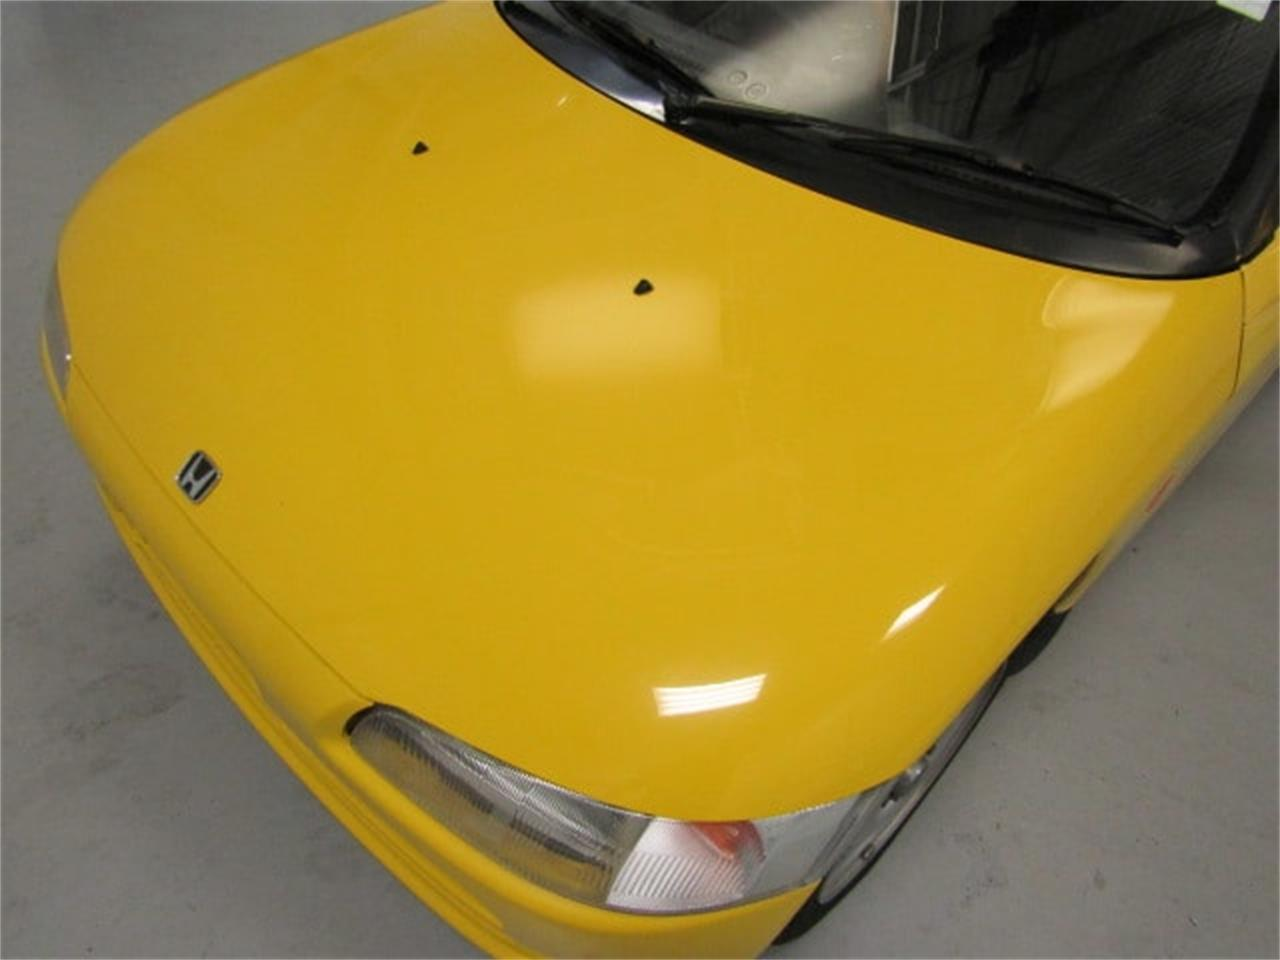 Large Picture of 1991 Honda Beat located in Christiansburg Virginia - $4,990.00 Offered by Duncan Imports & Classic Cars - JL81